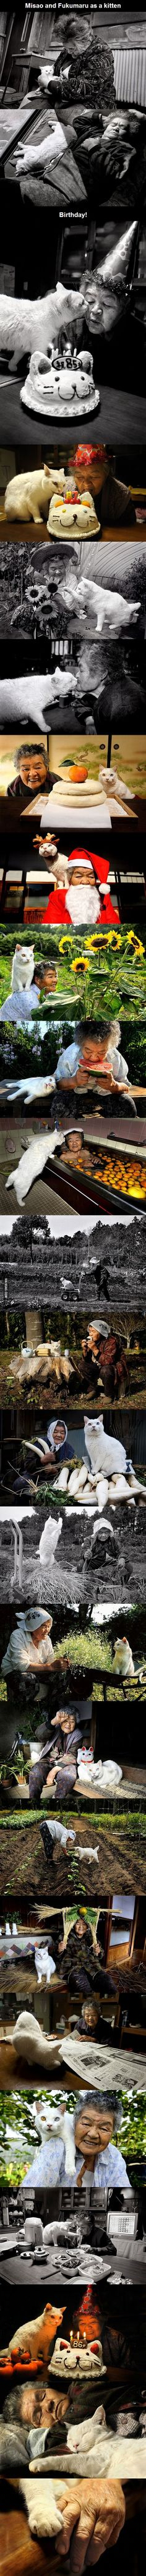 65 years from now